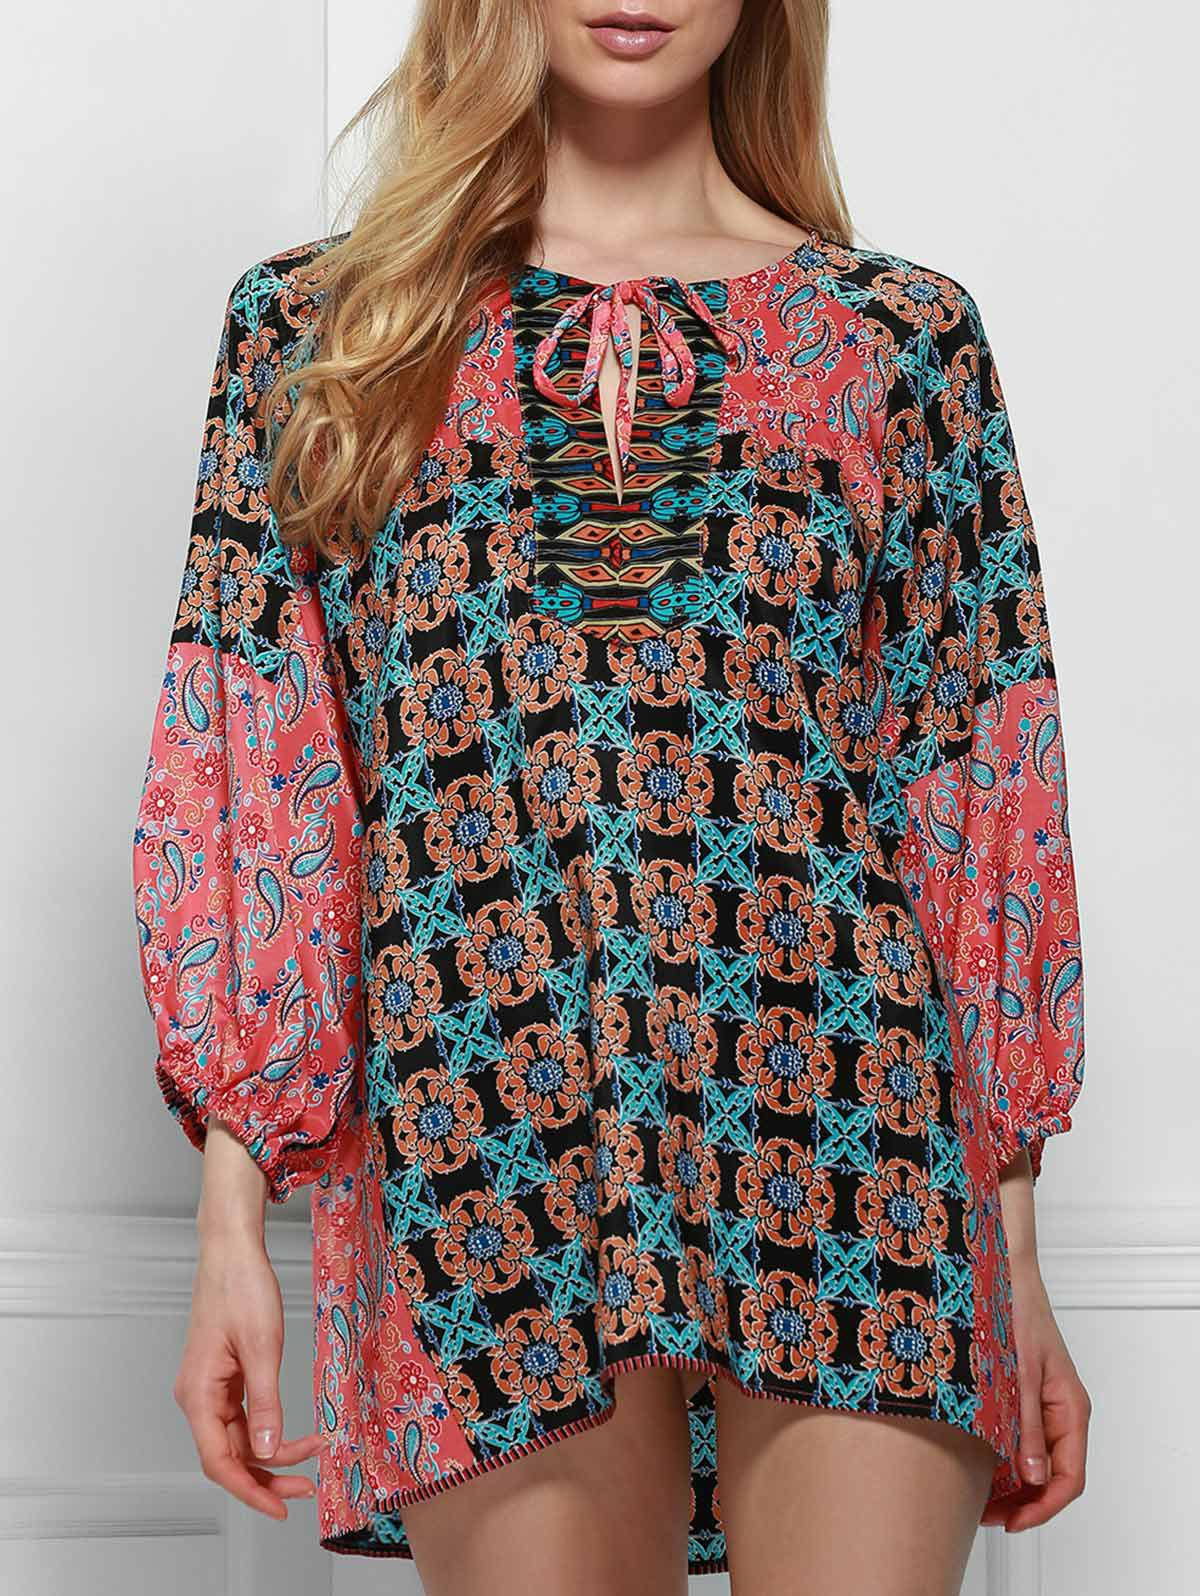 Ethnic Round Neck Long Sleeve Printed Lace-Up Women's Blouse - COLORMIX S